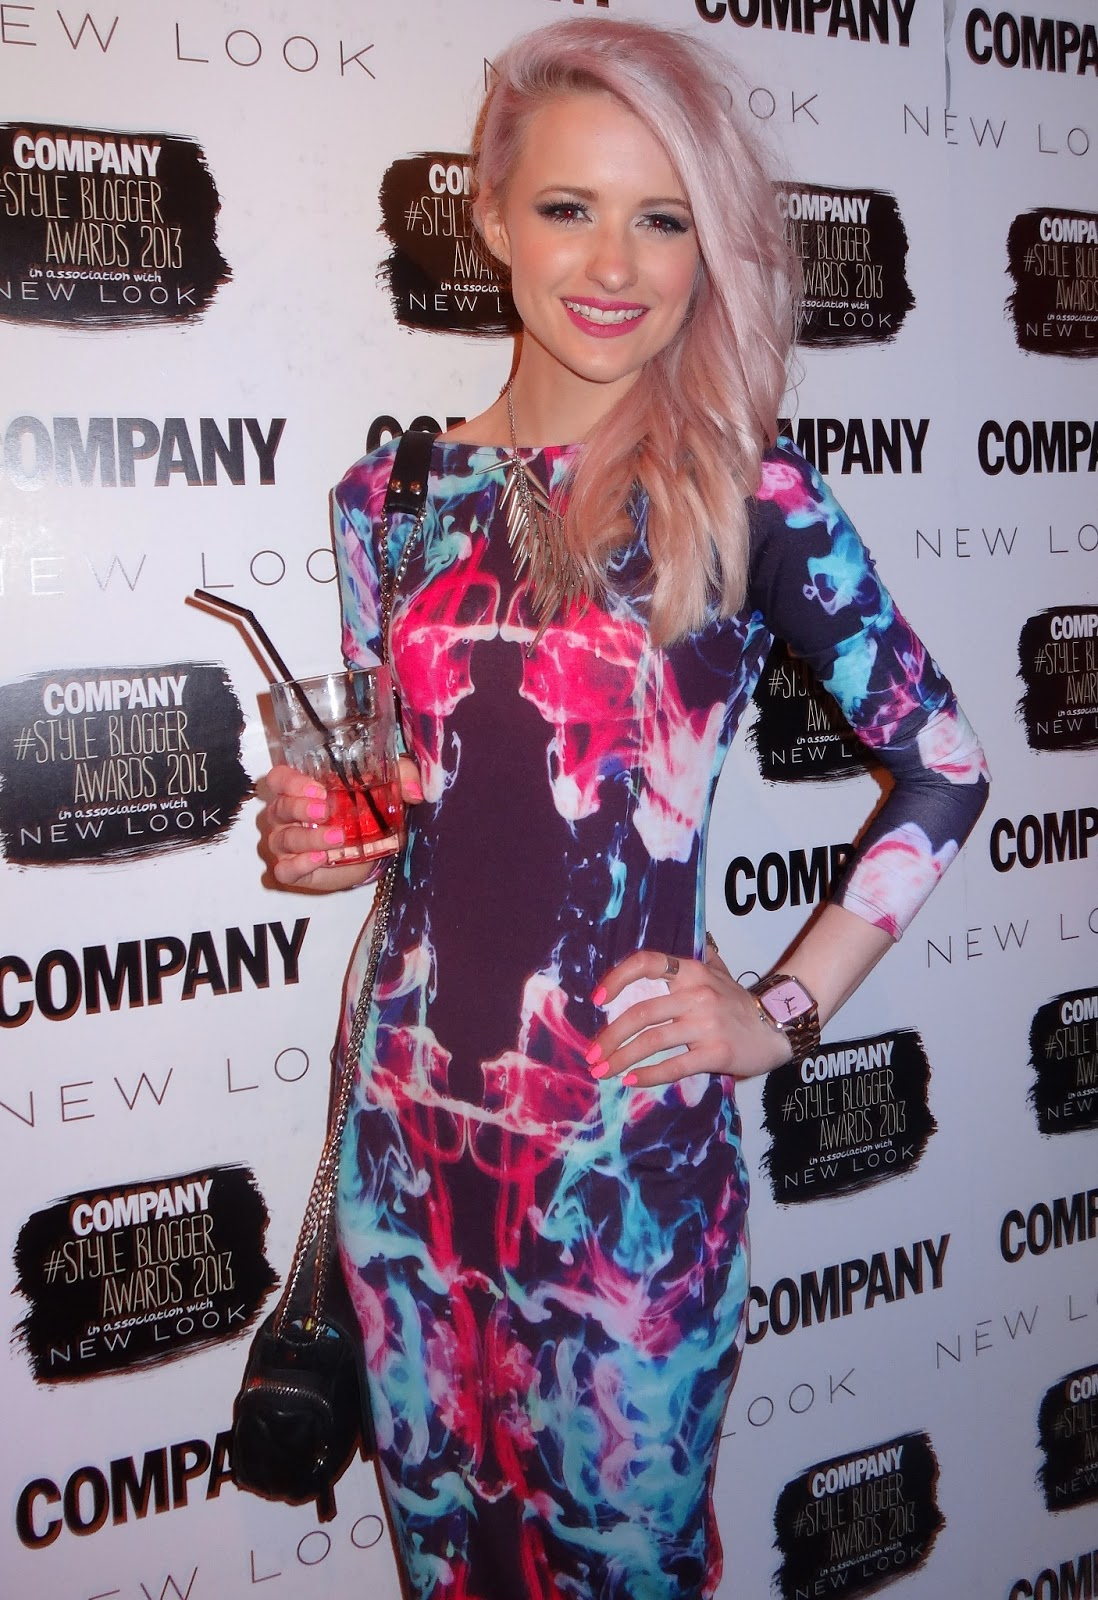 Company Stylebloggerawards 2013 Winner